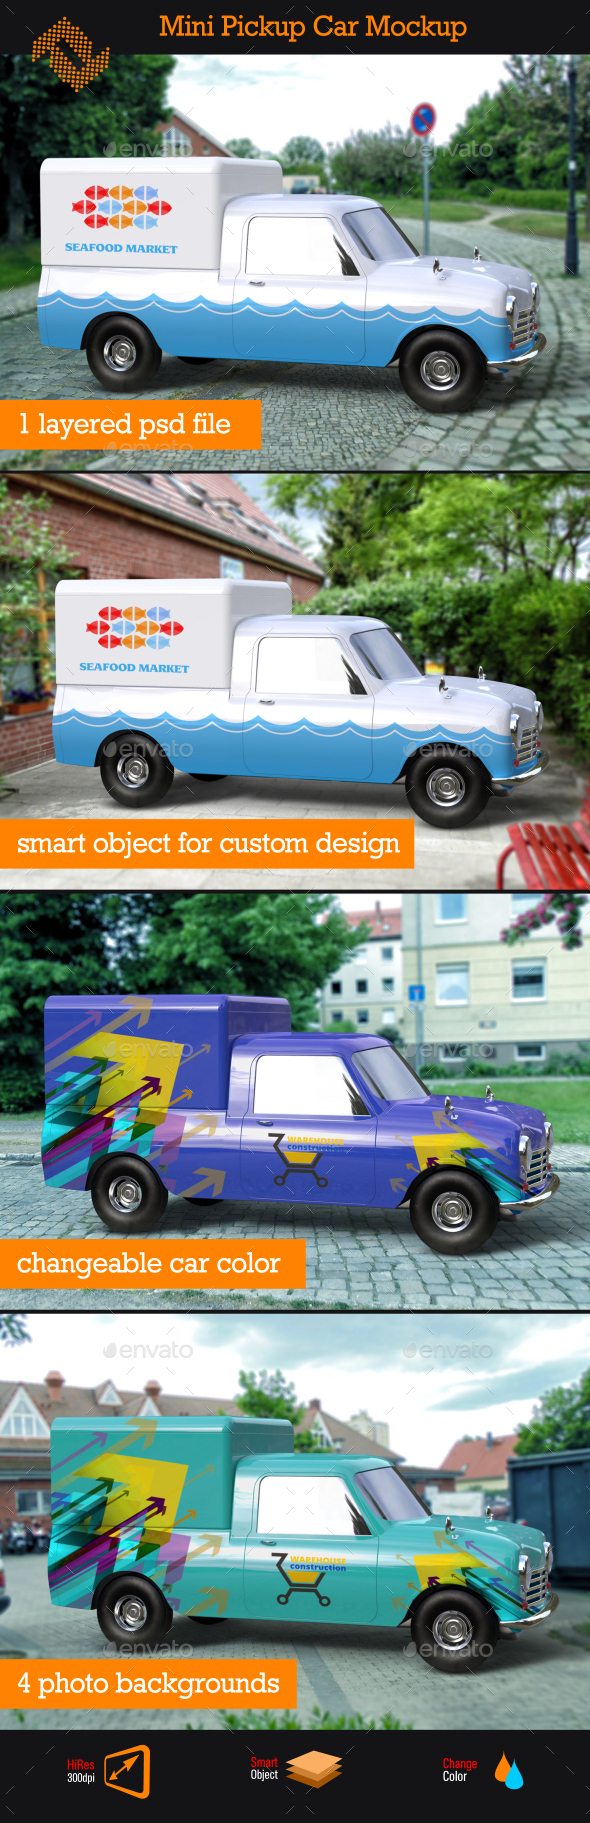 Mini Pickup Car Mockup